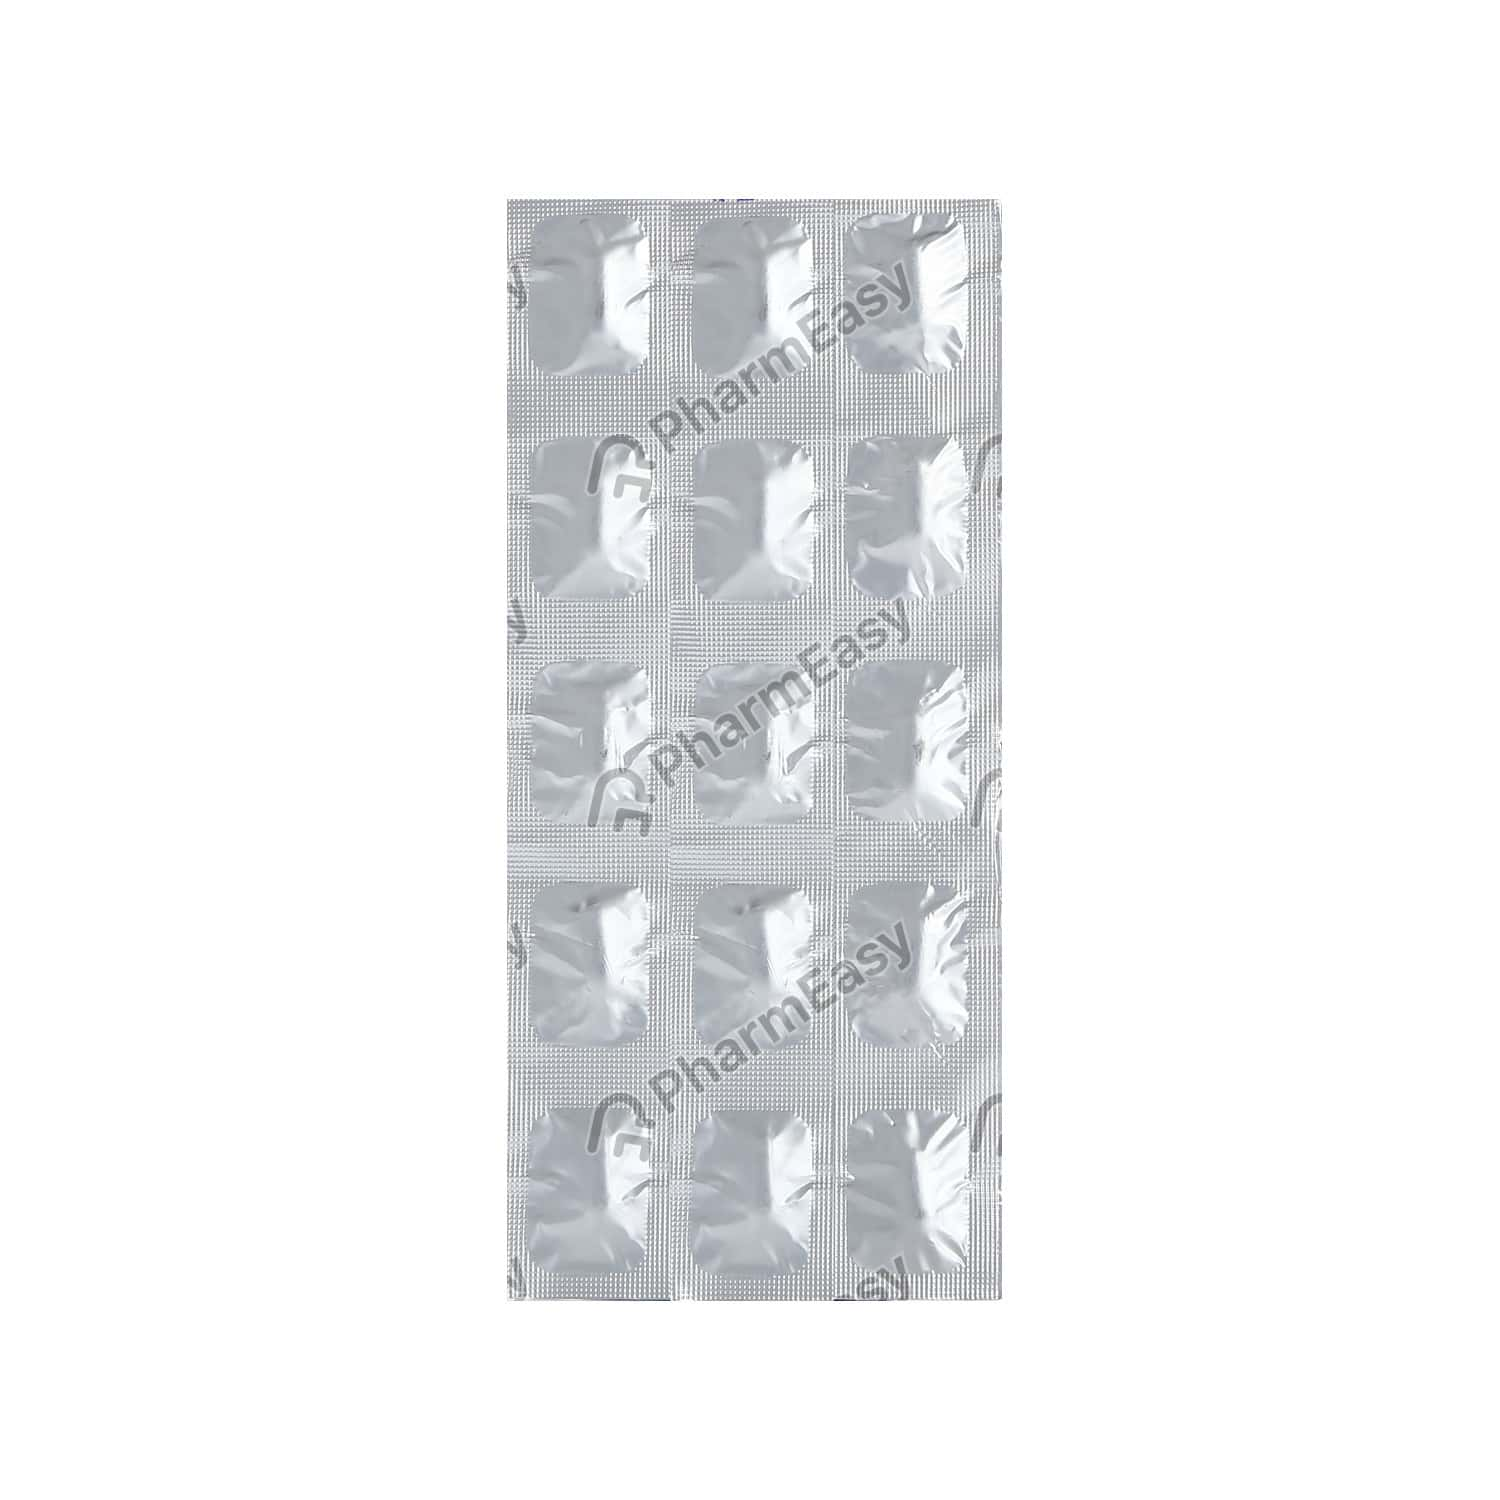 Mignar 50mg Strip Of 15 Tablets